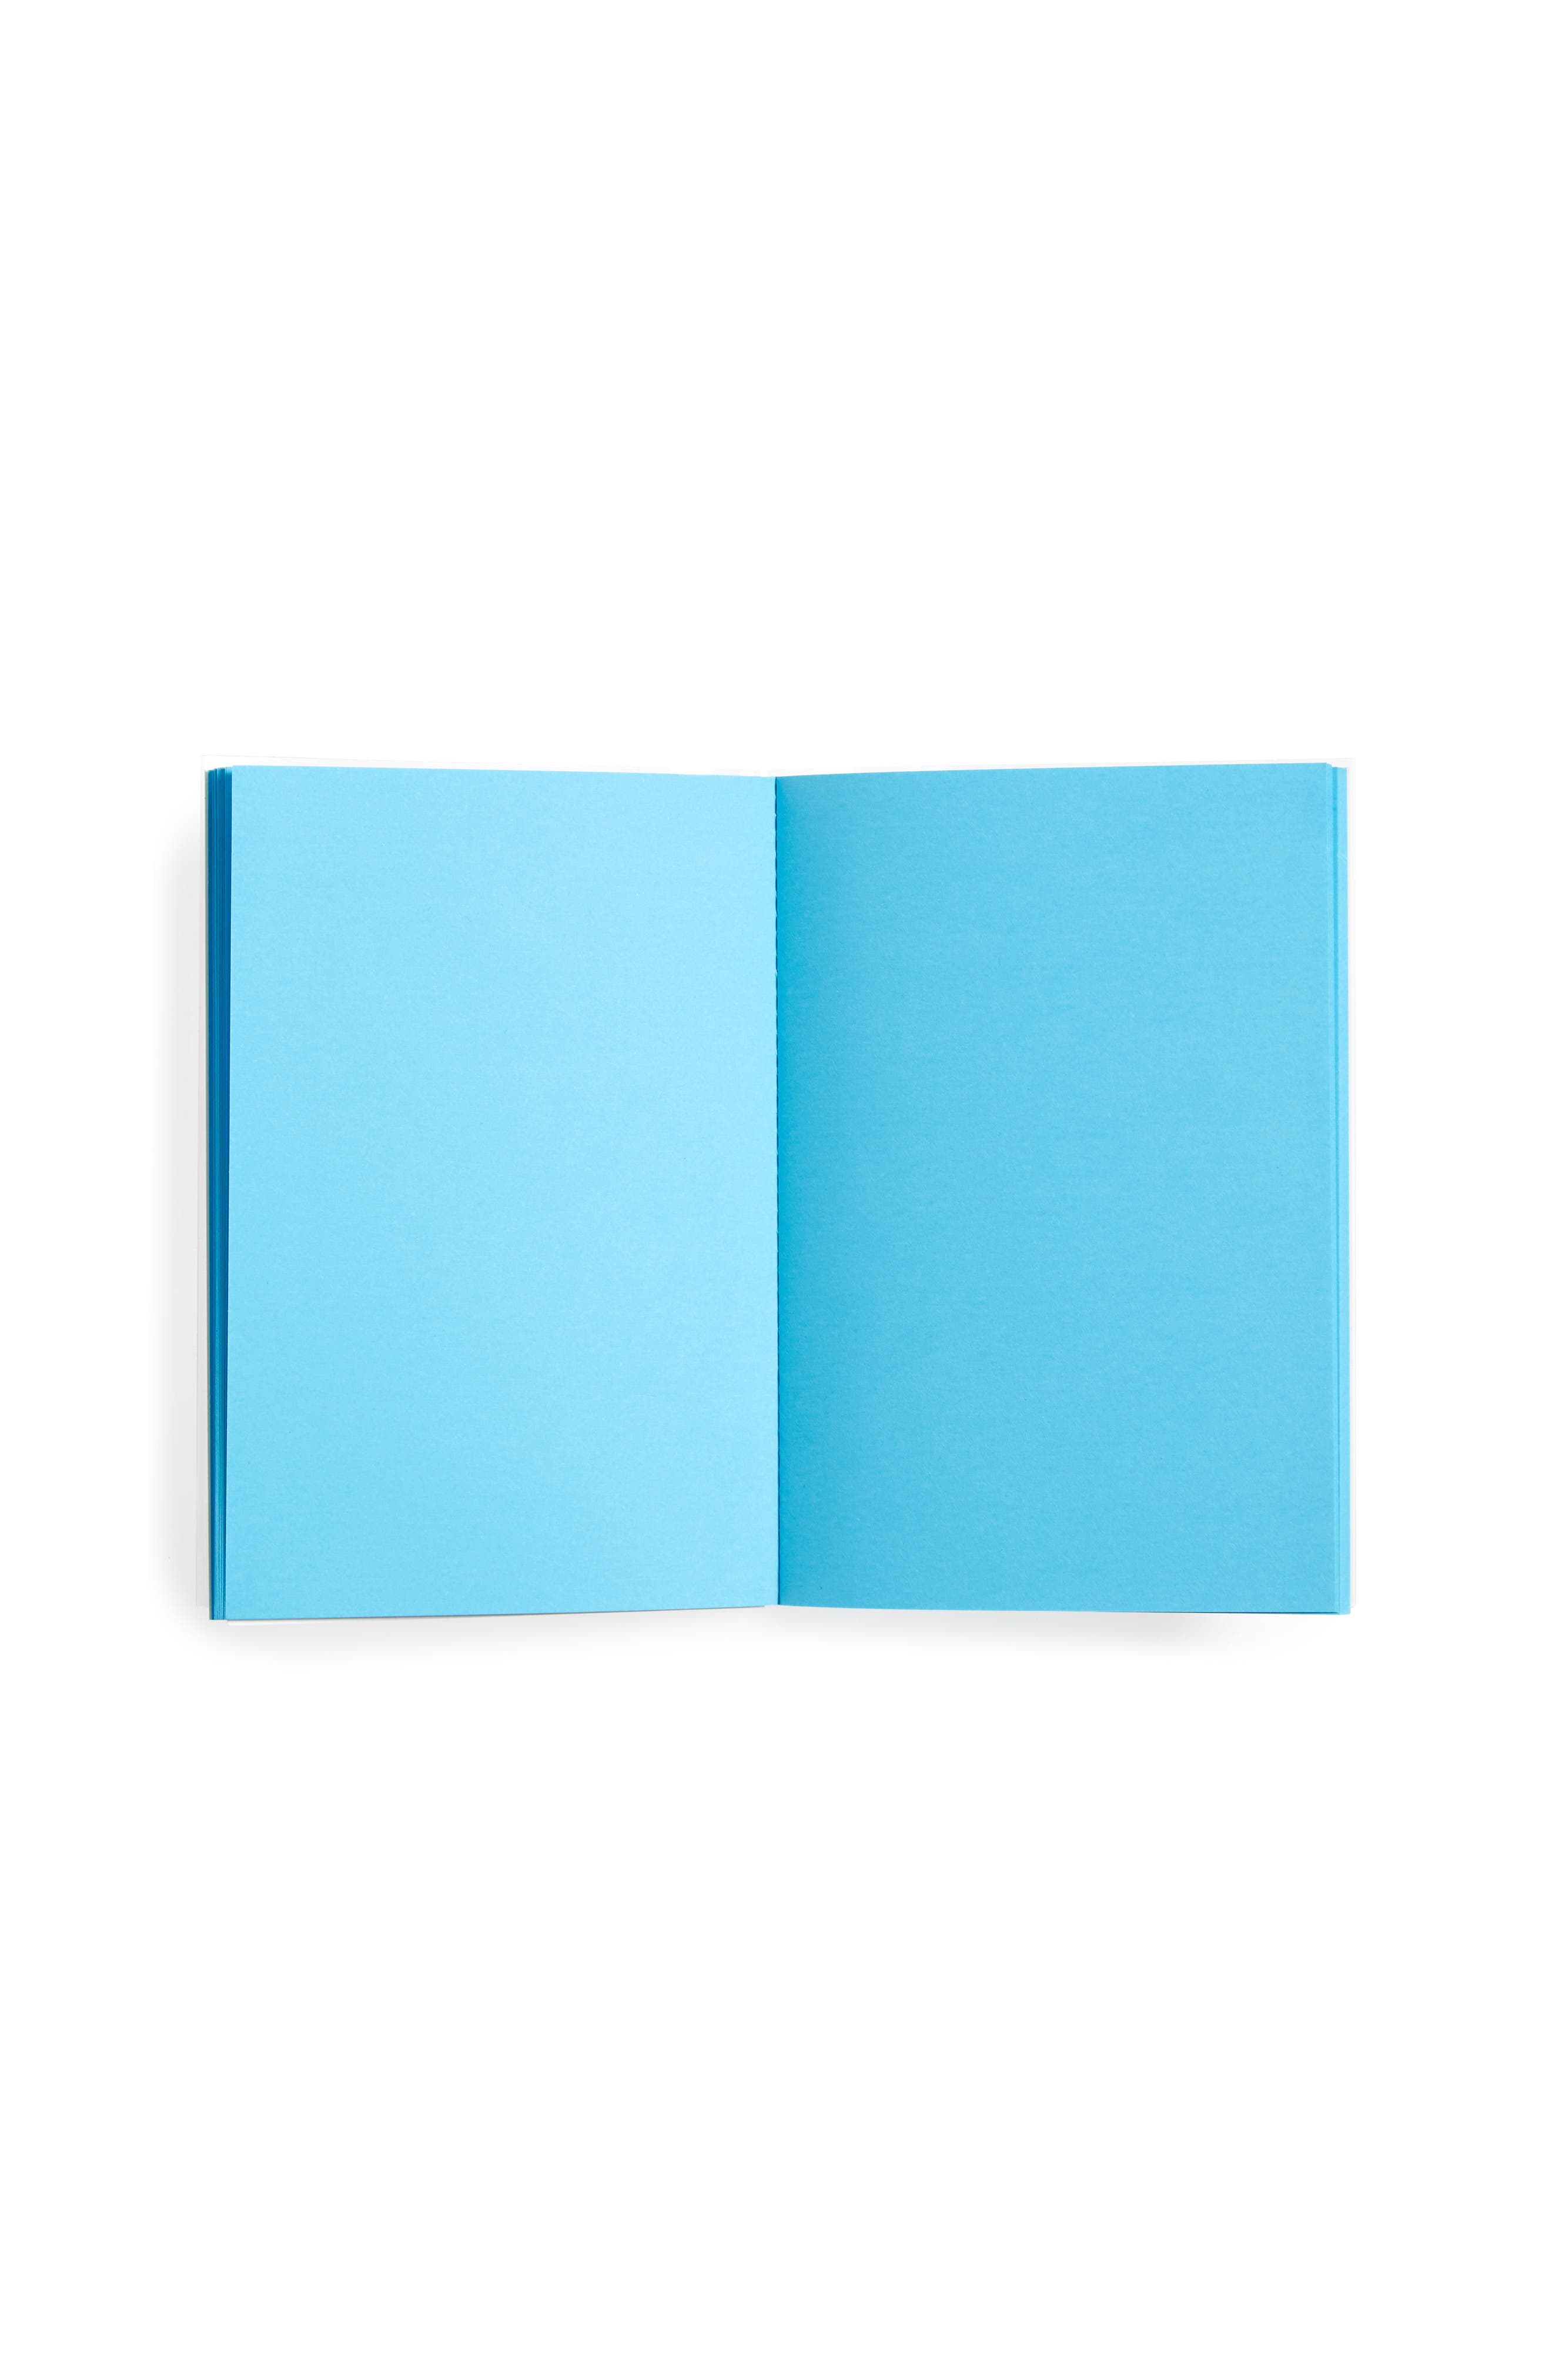 Nathalie Du Pasquier For Rubberband Small Notebook,                             Alternate thumbnail 2, color,                             400